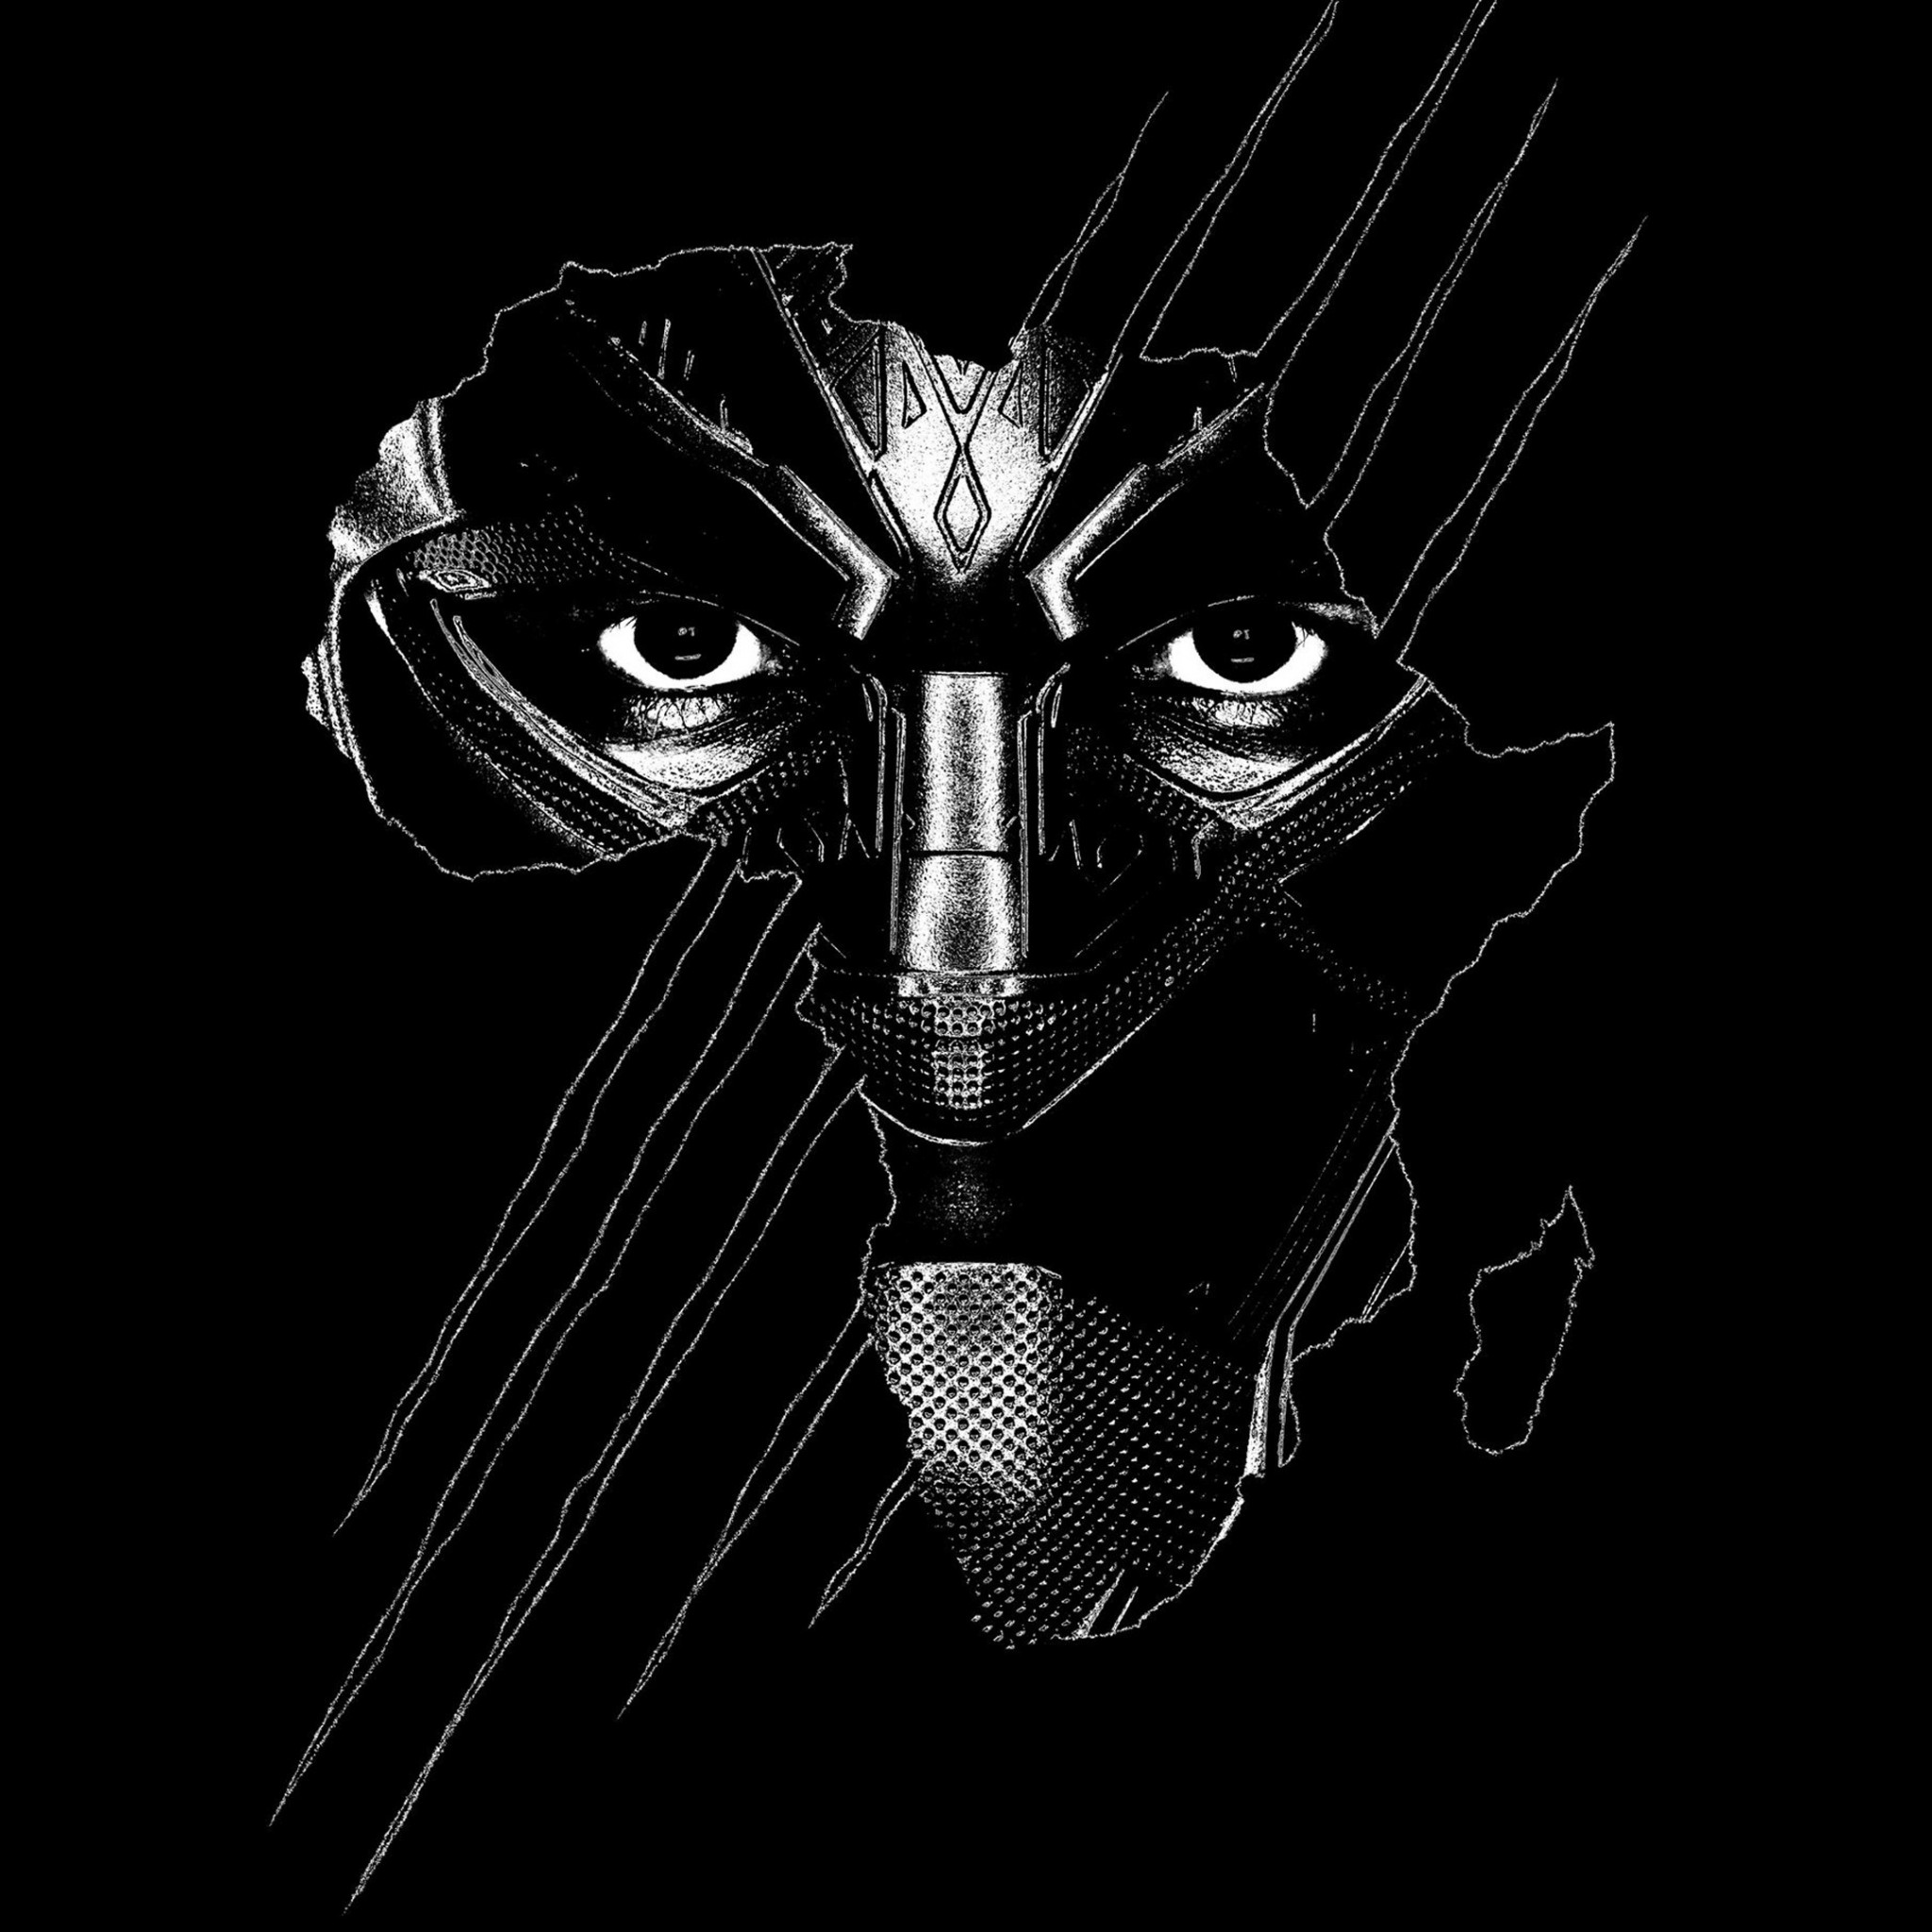 Black Panther wallpaper 2048x2048